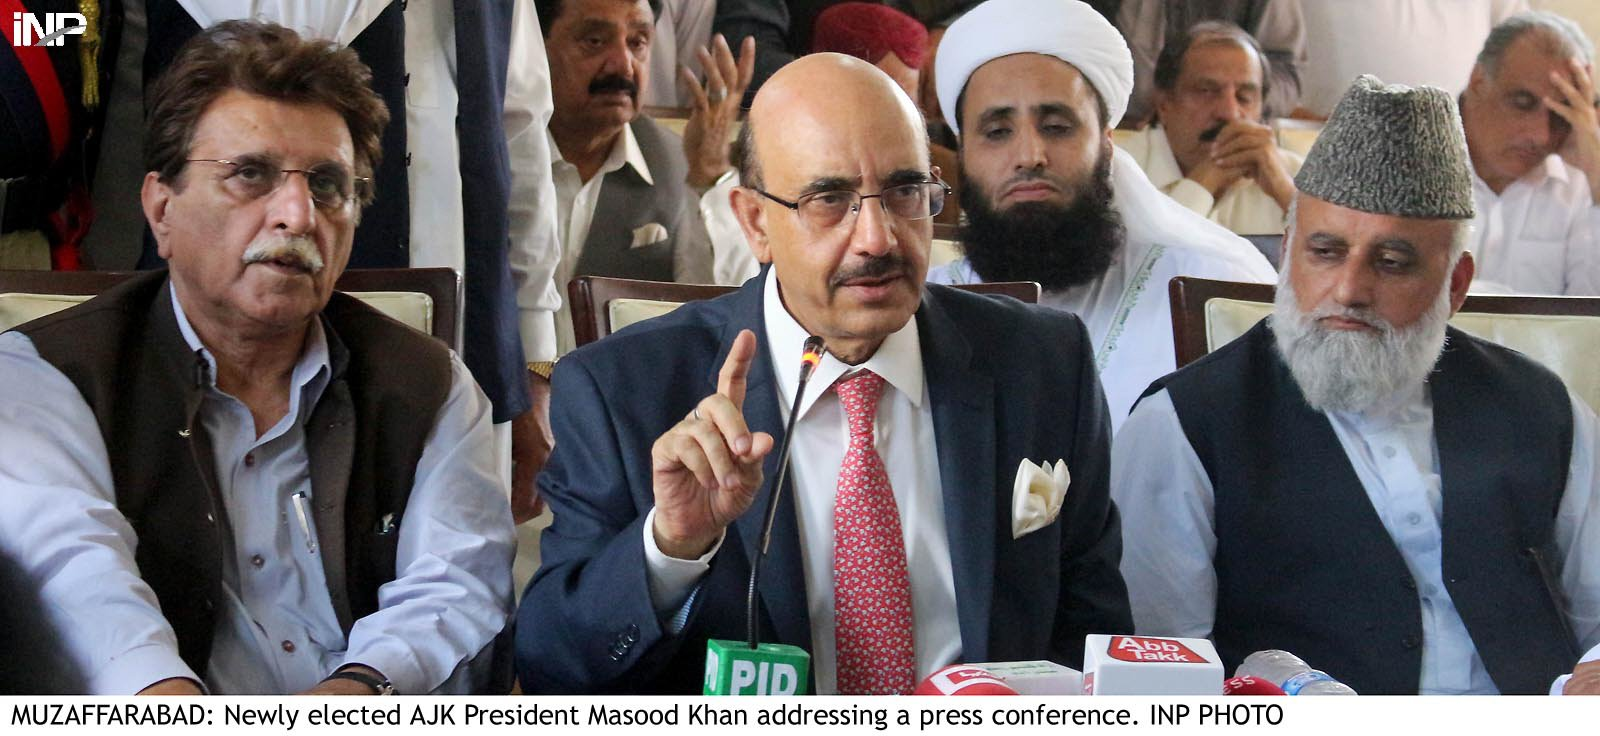 AJK PM urged the youth to use social media to highlight the Kashmir dispute in its true perspectives. PHOTO: INP/FILE